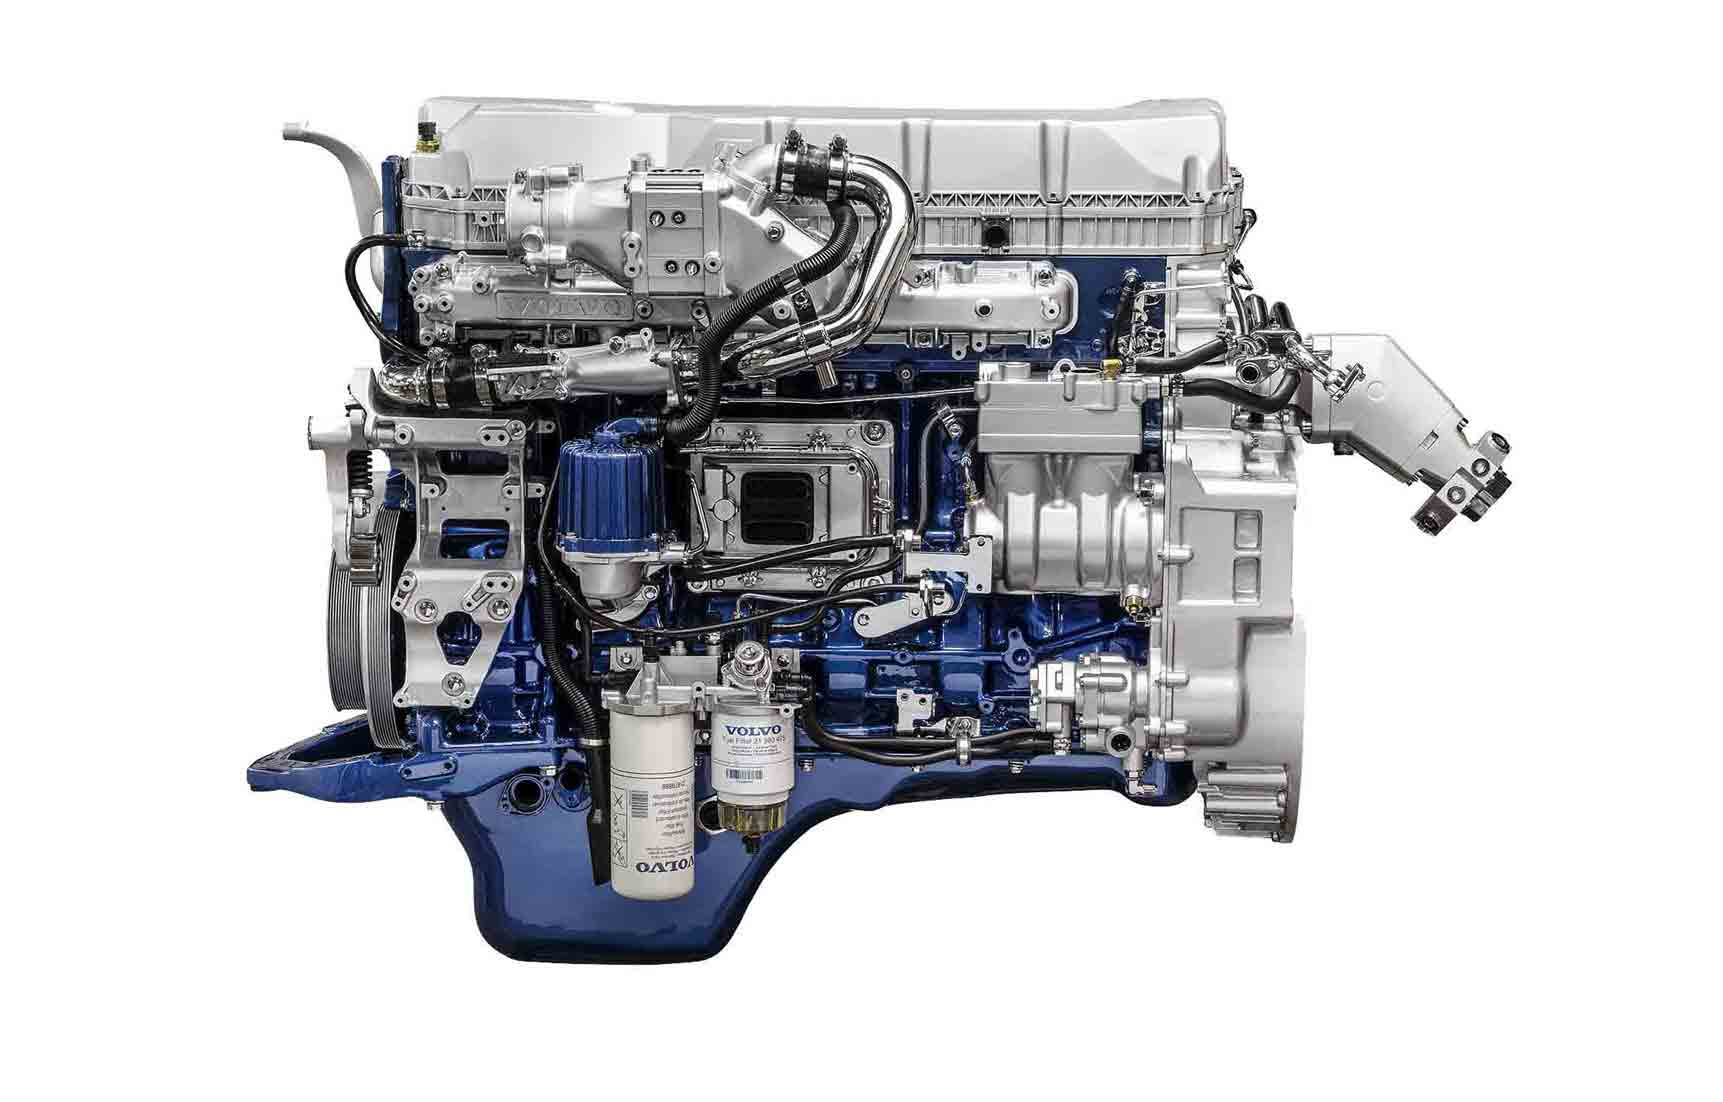 stock subject engine change details image tpi volvo may assys parts fkalmtpfskin f to